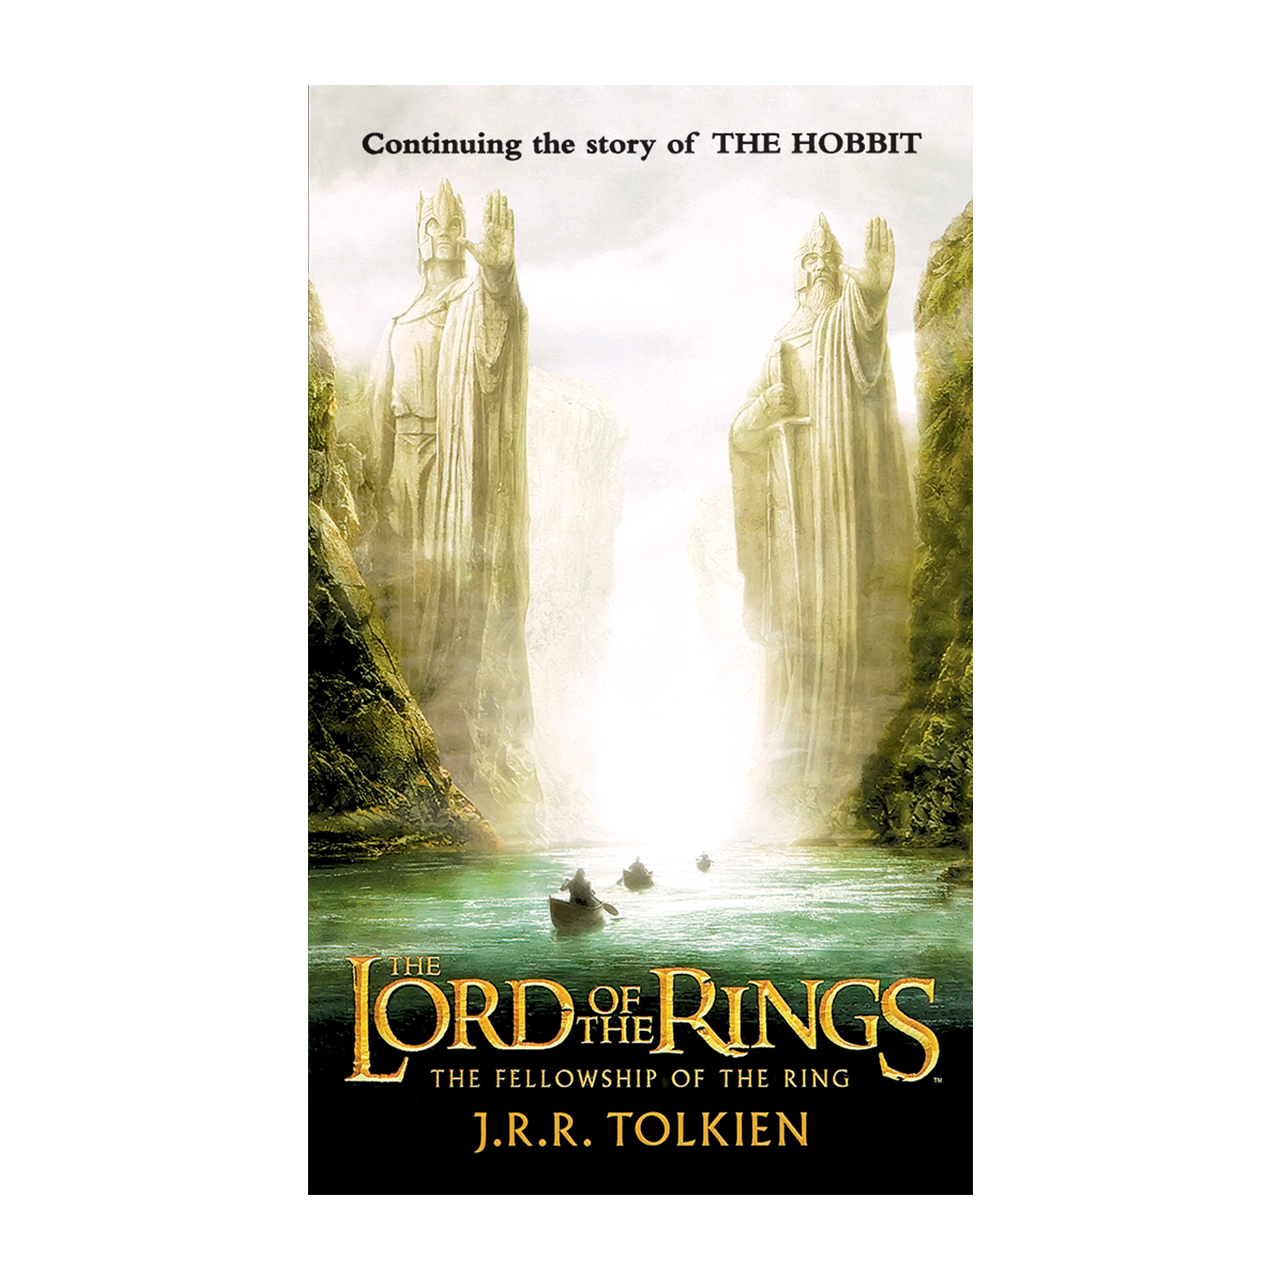 رمان انگلیسی (The Lord of the Rings (The Fellowship of the Ring اثر جی آر.آر تالکین